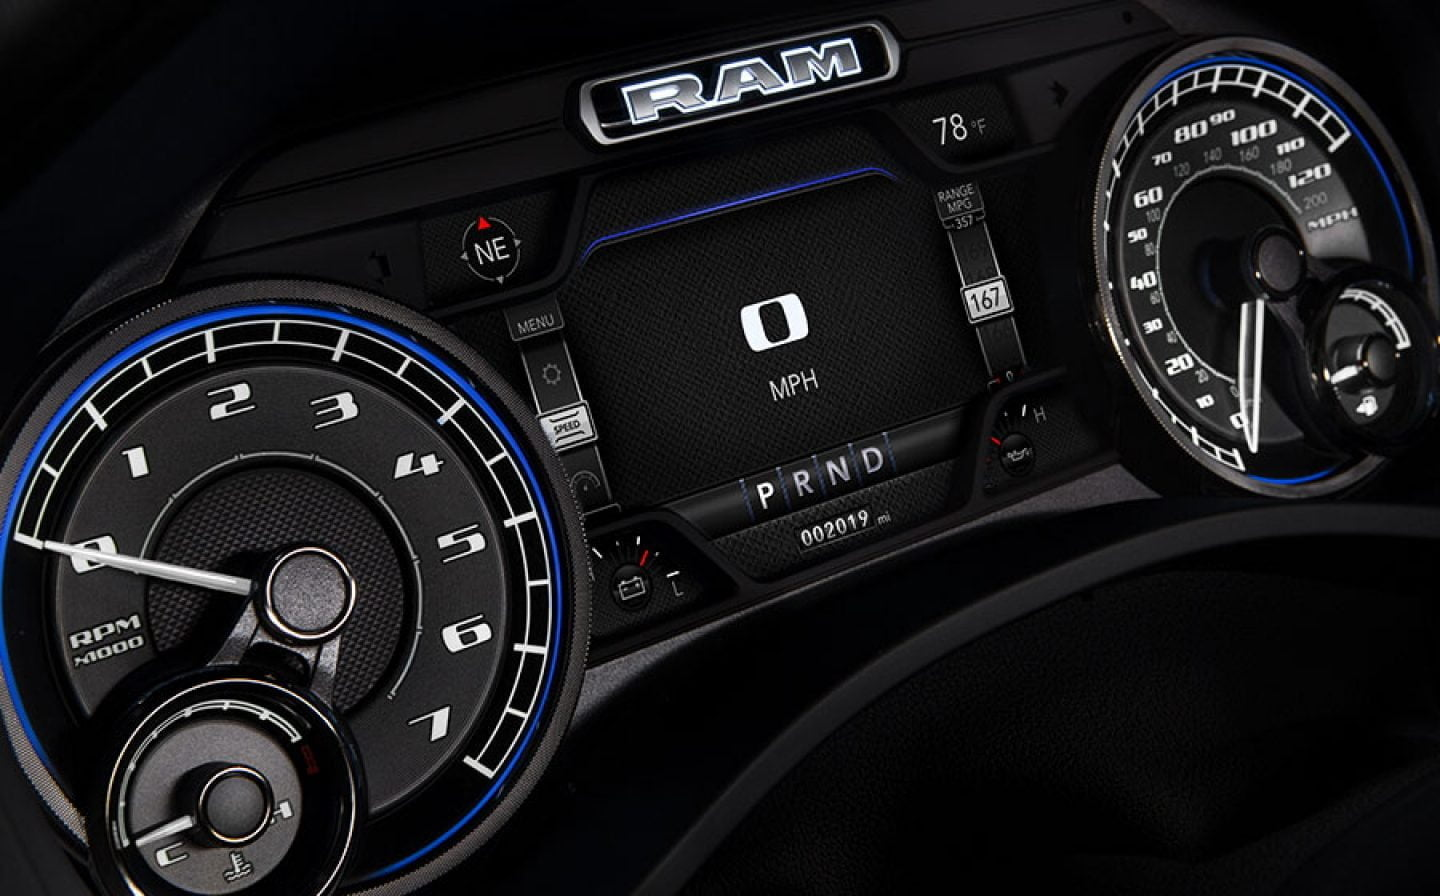 2019 ram 1500 Interior Tech display agt europe